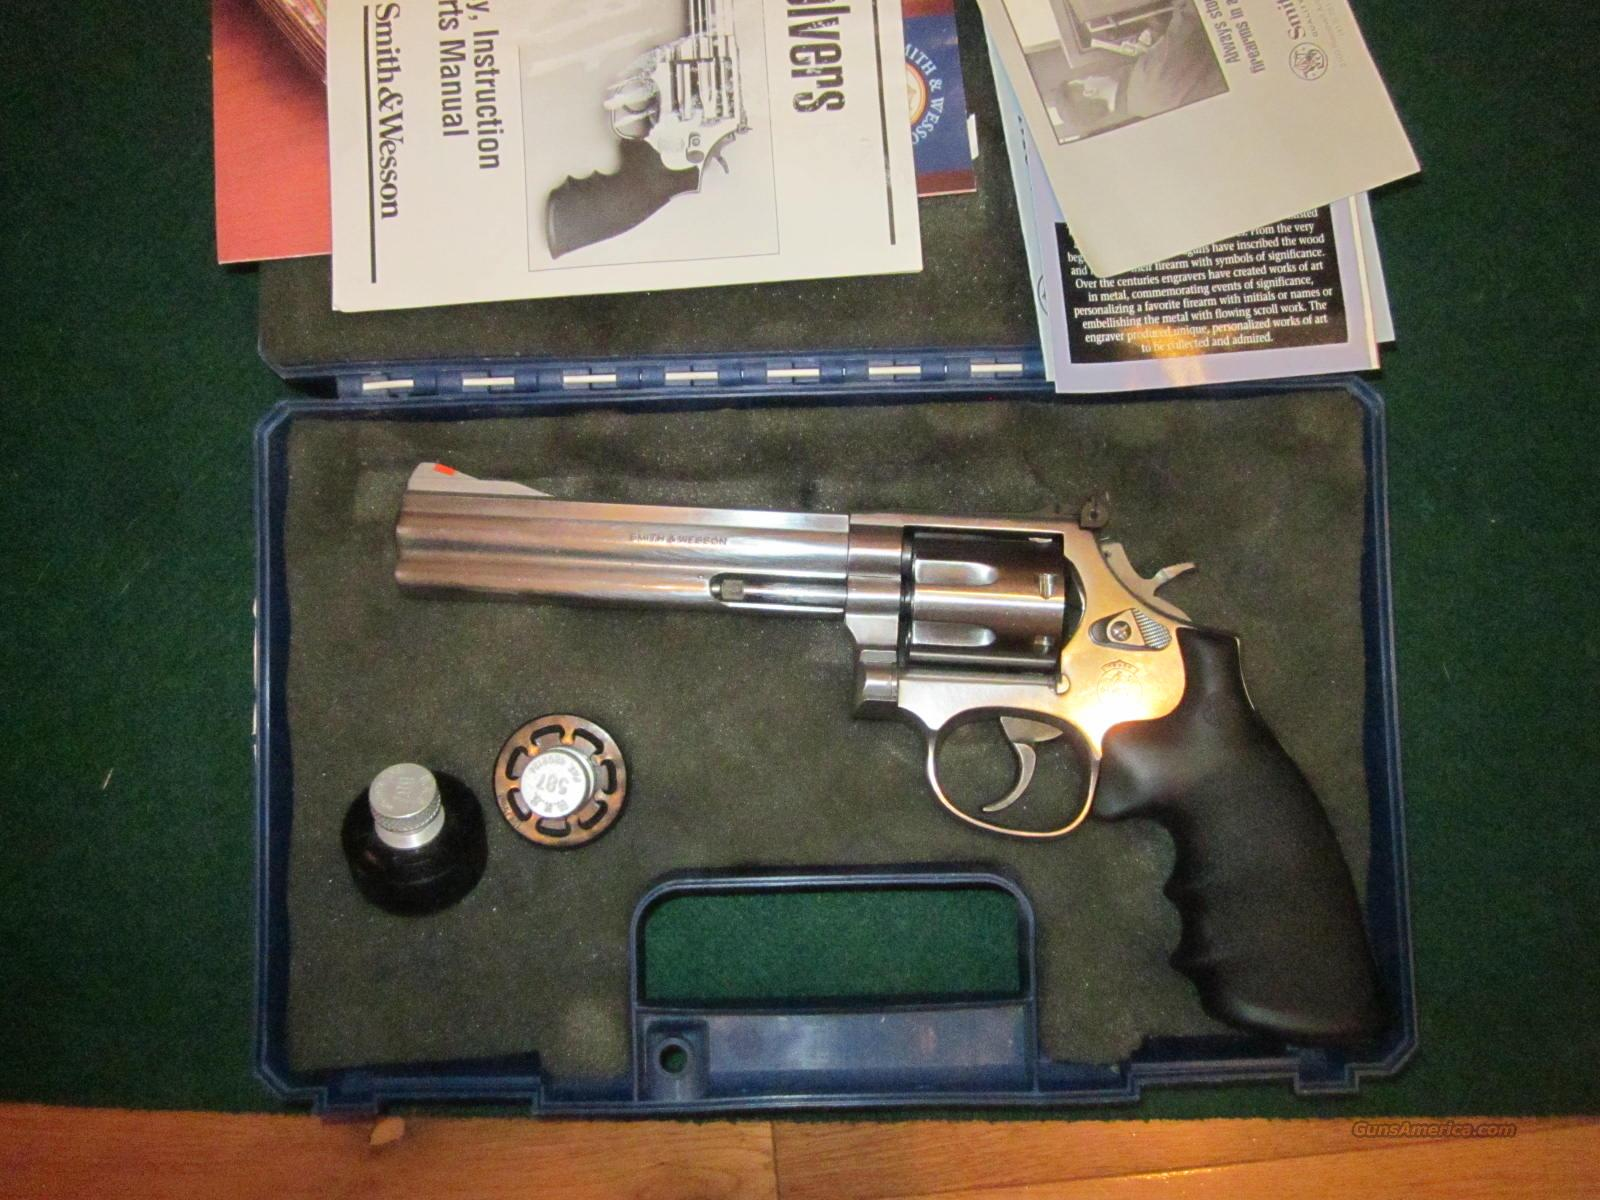 Smith & Wesson 686-4  Guns > Pistols > Smith & Wesson Revolvers > Full Frame Revolver